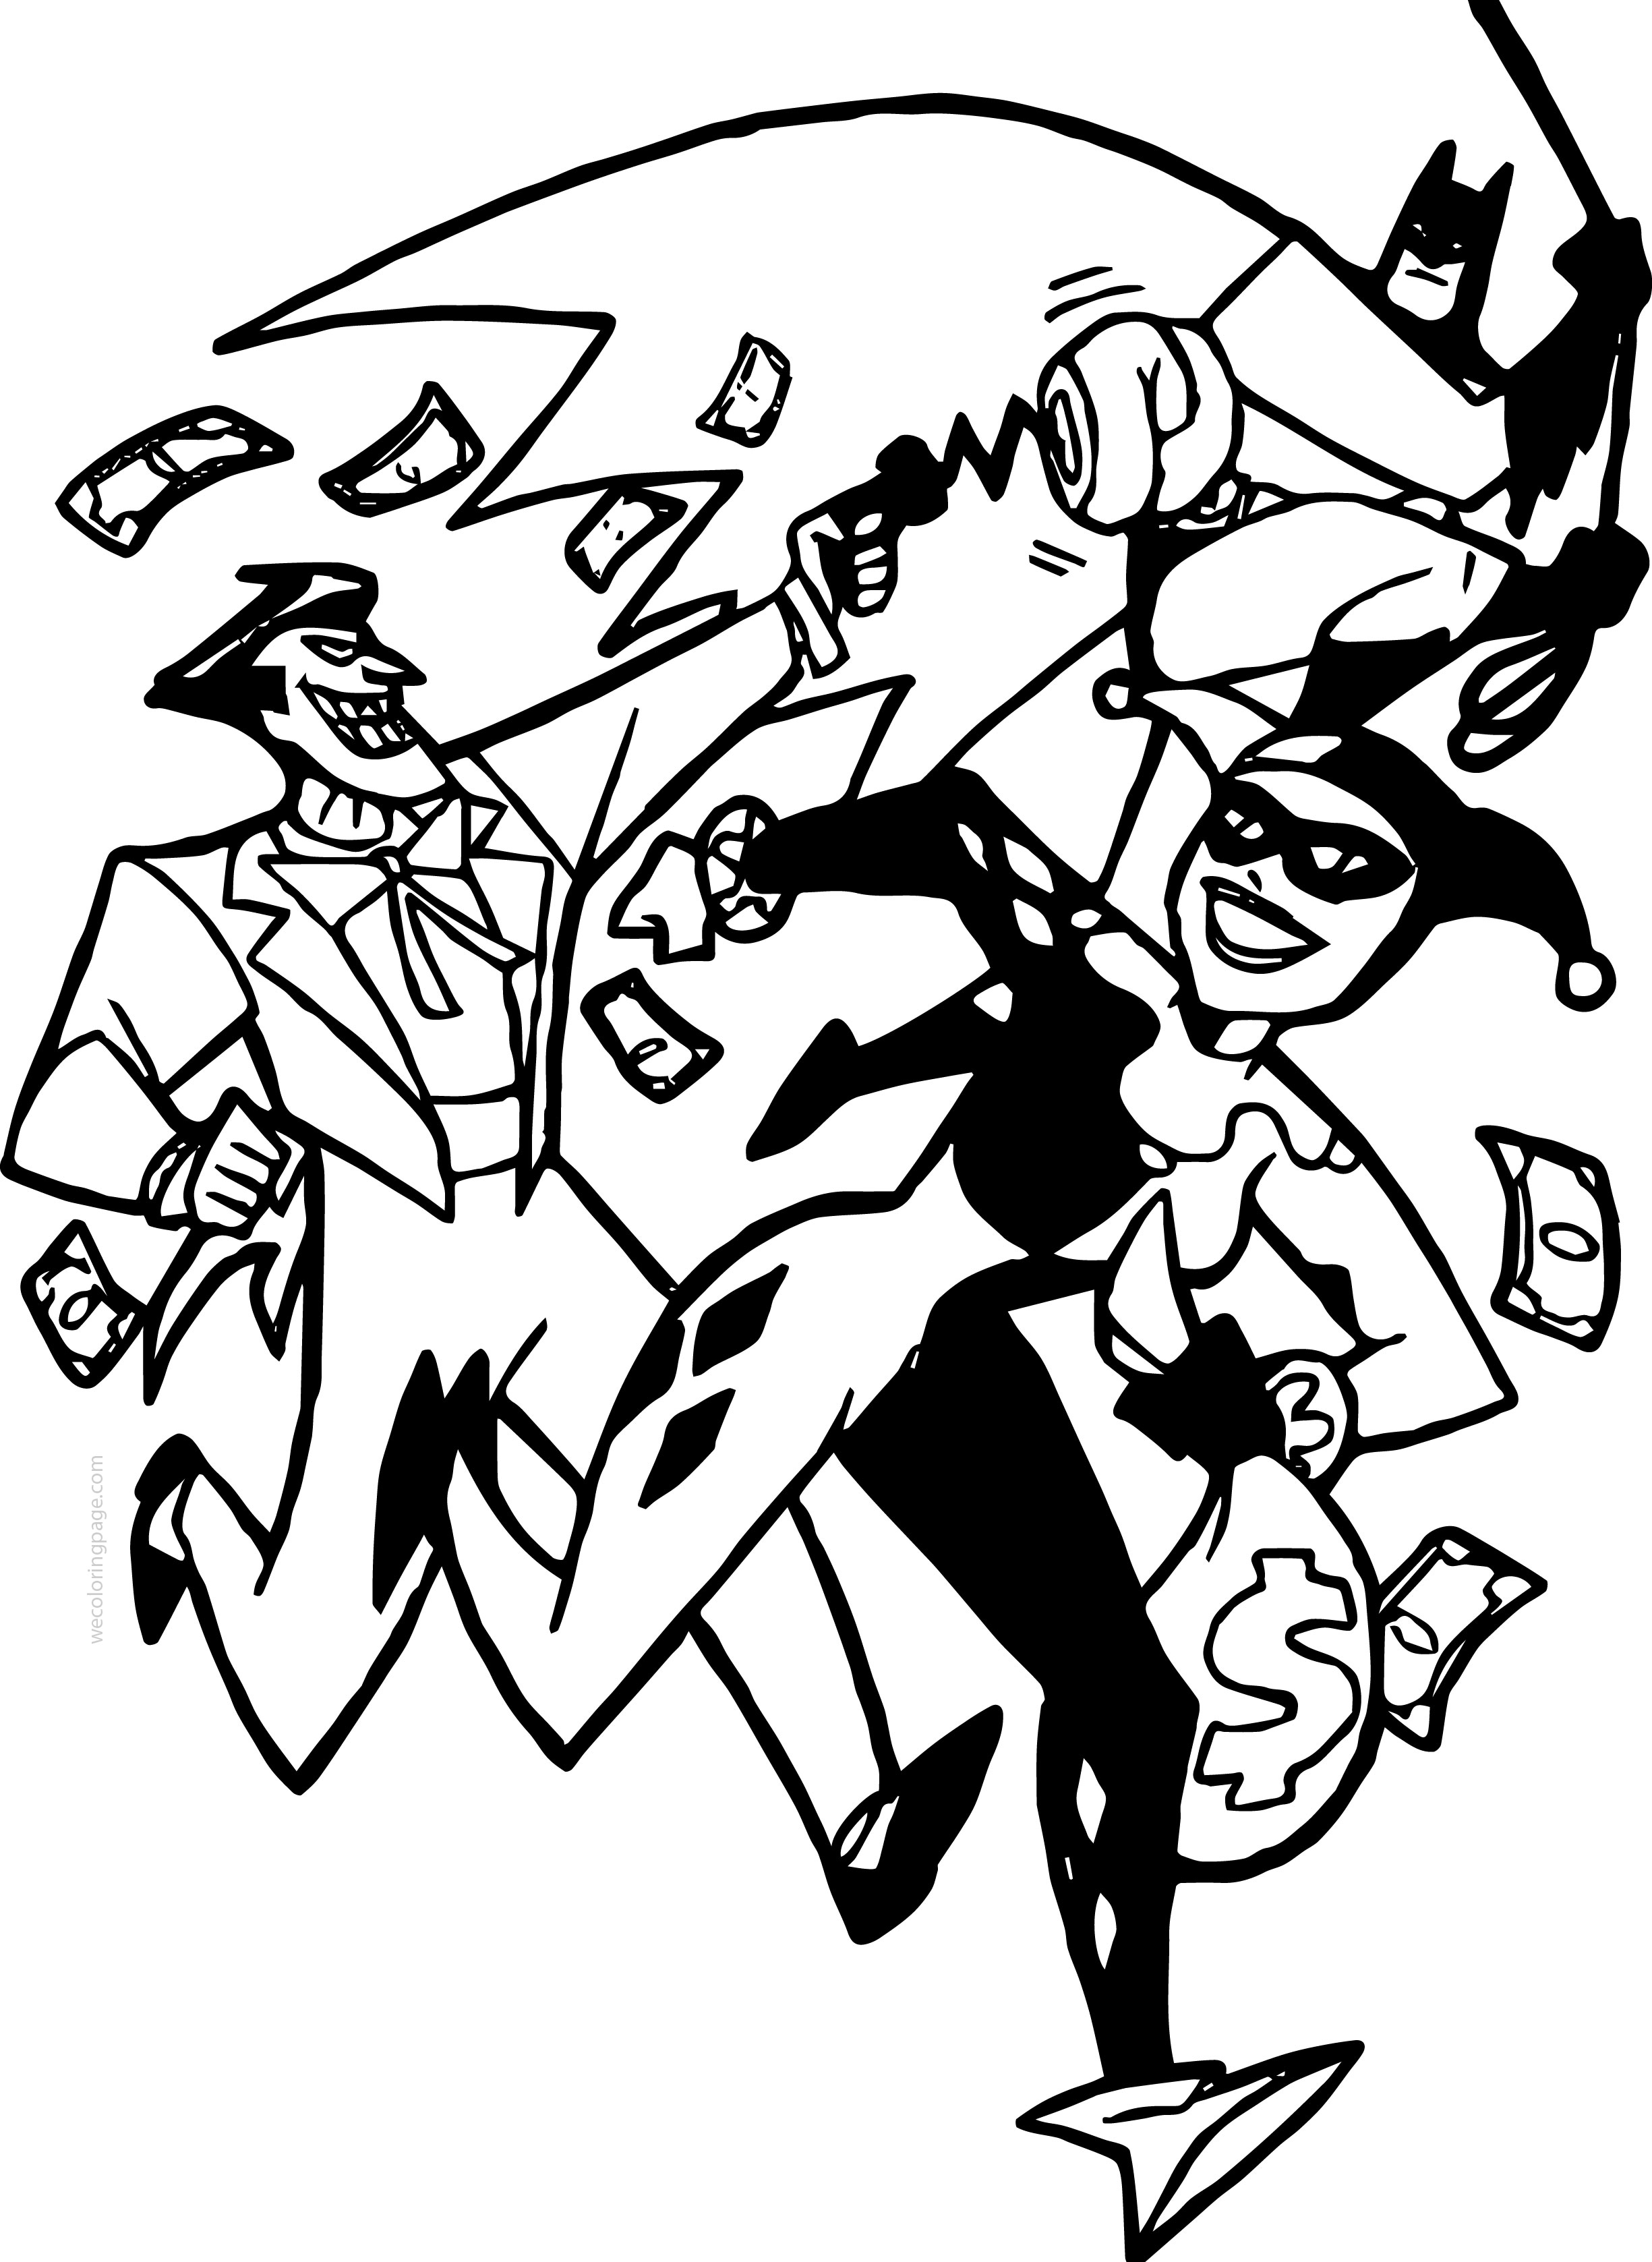 2450x3354 Joker Batman Cartoon Characters Coloring Page Wecoloringpage